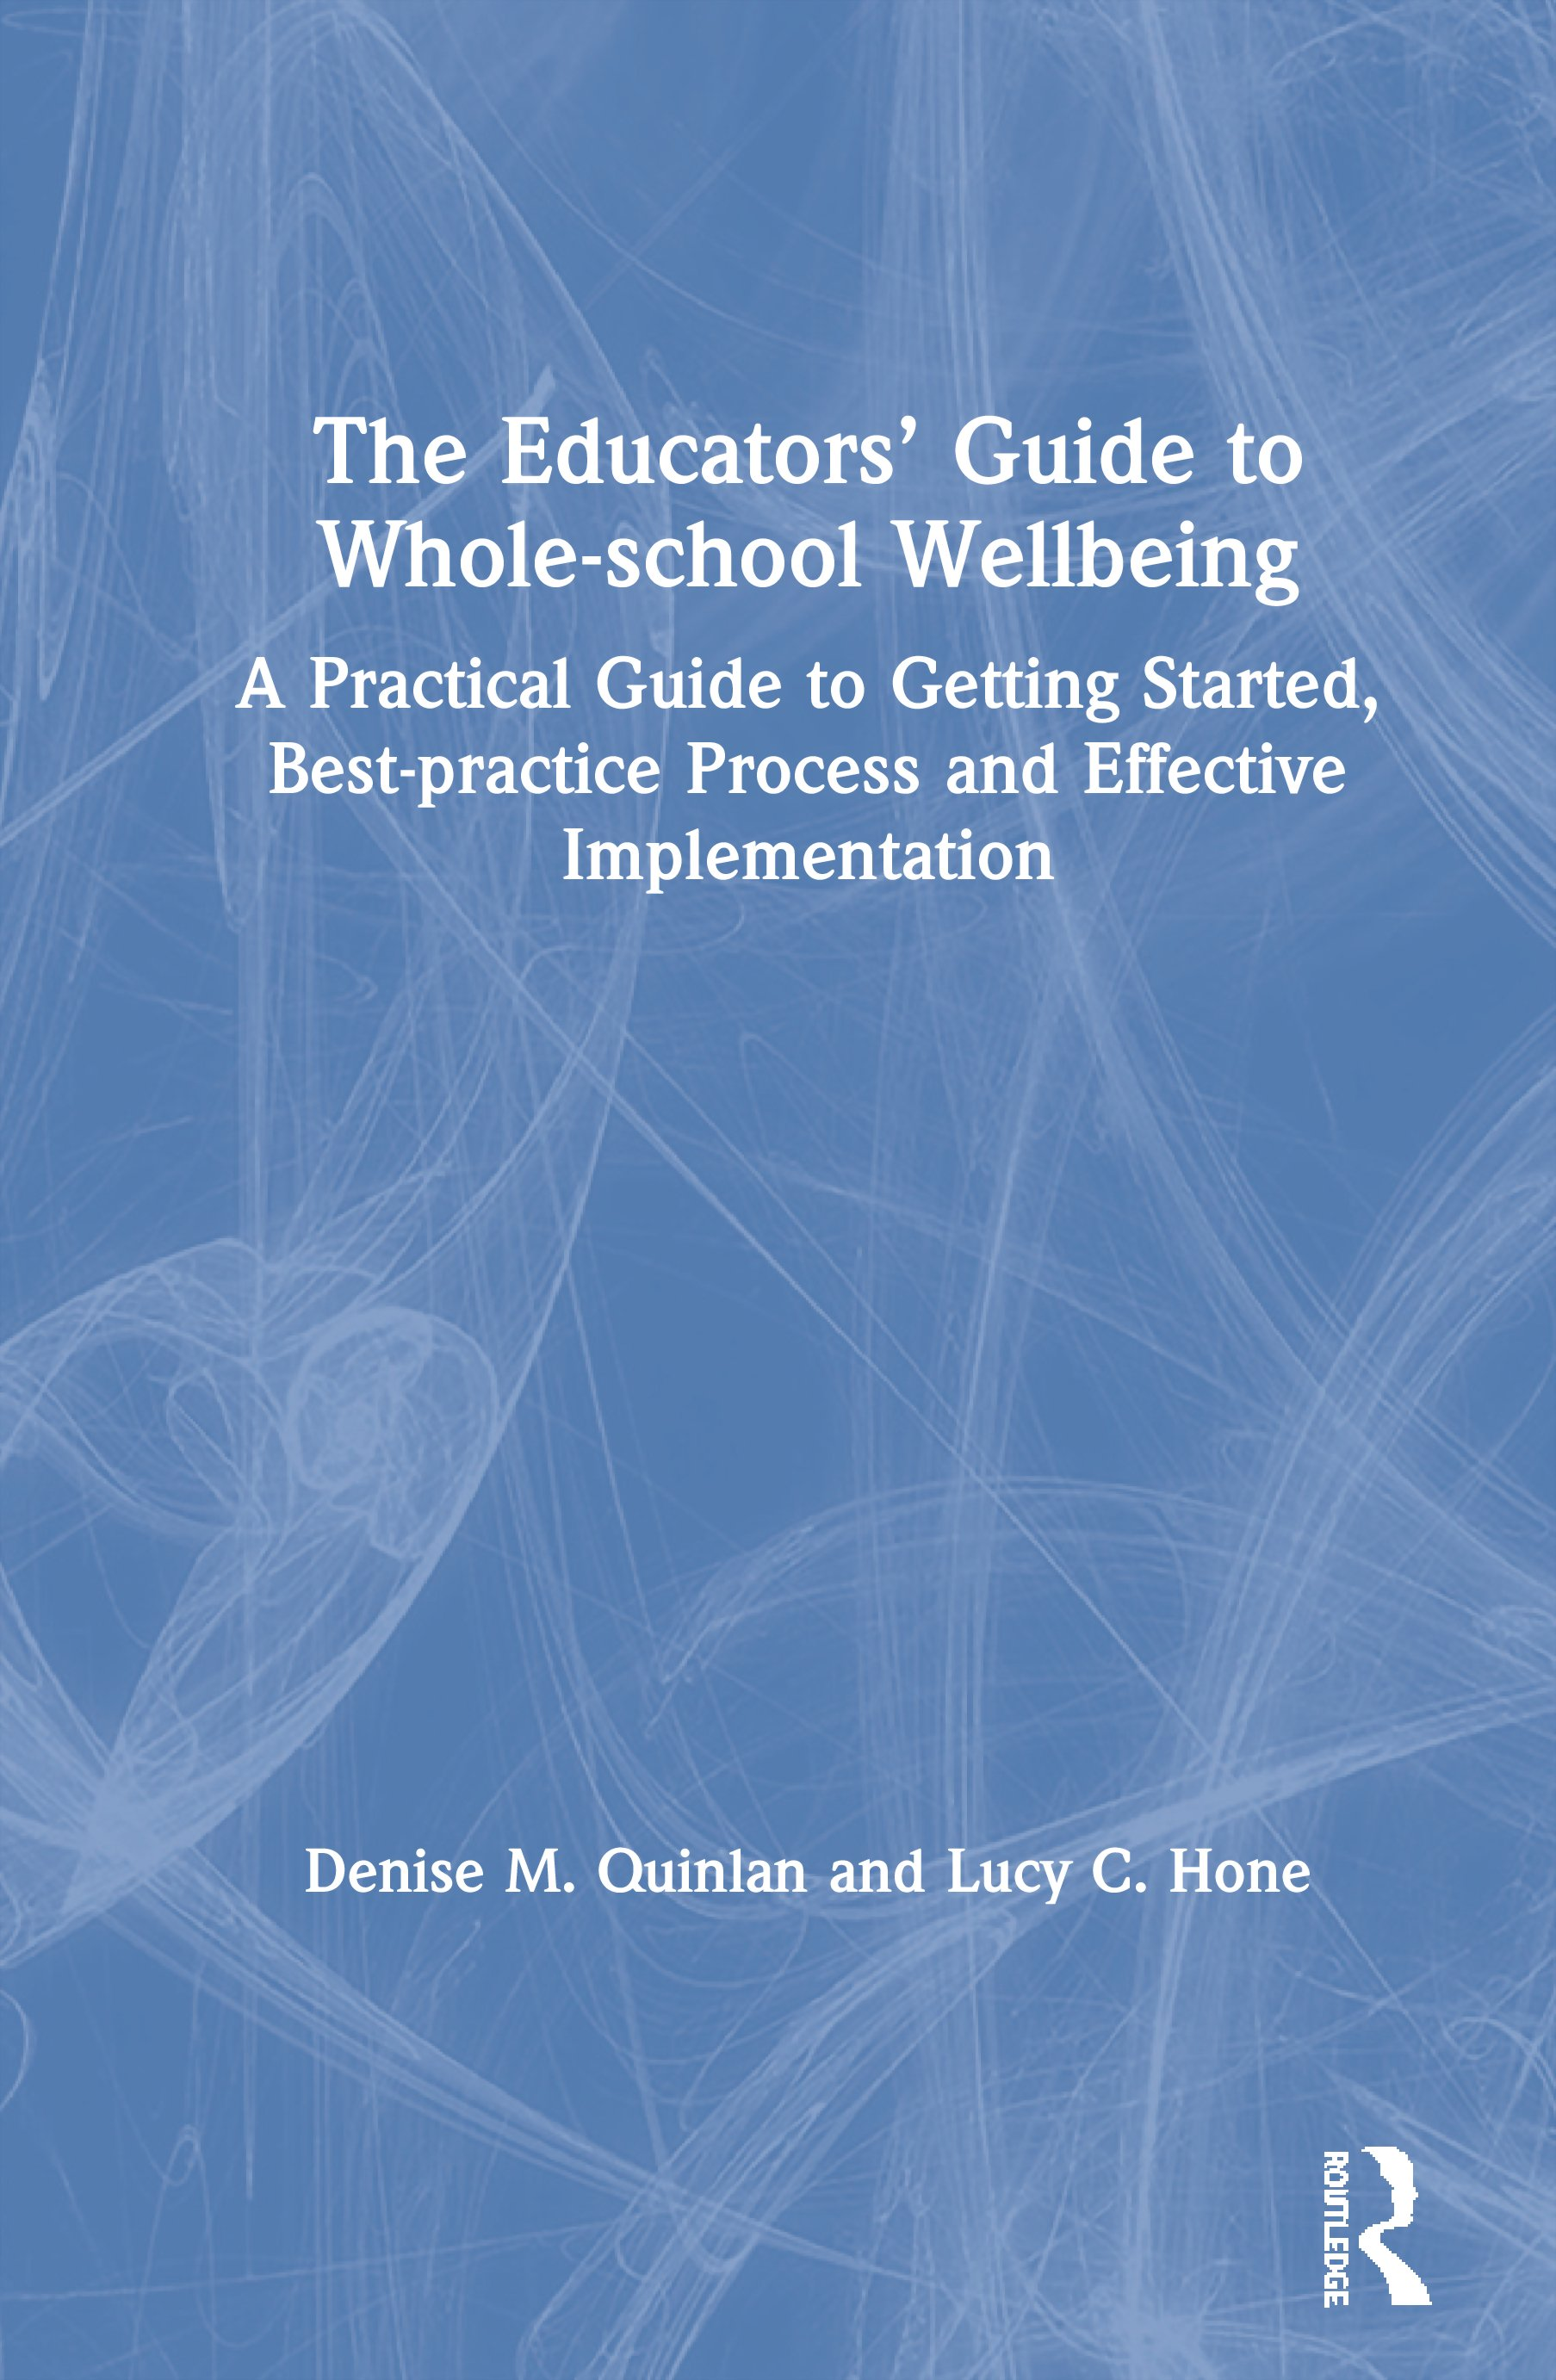 The Educators' Guide to Whole-school Wellbeing: A Practical Guide to Getting Started, Best-practice Process and Effective Implementation, 1st Edition (Hardback) book cover